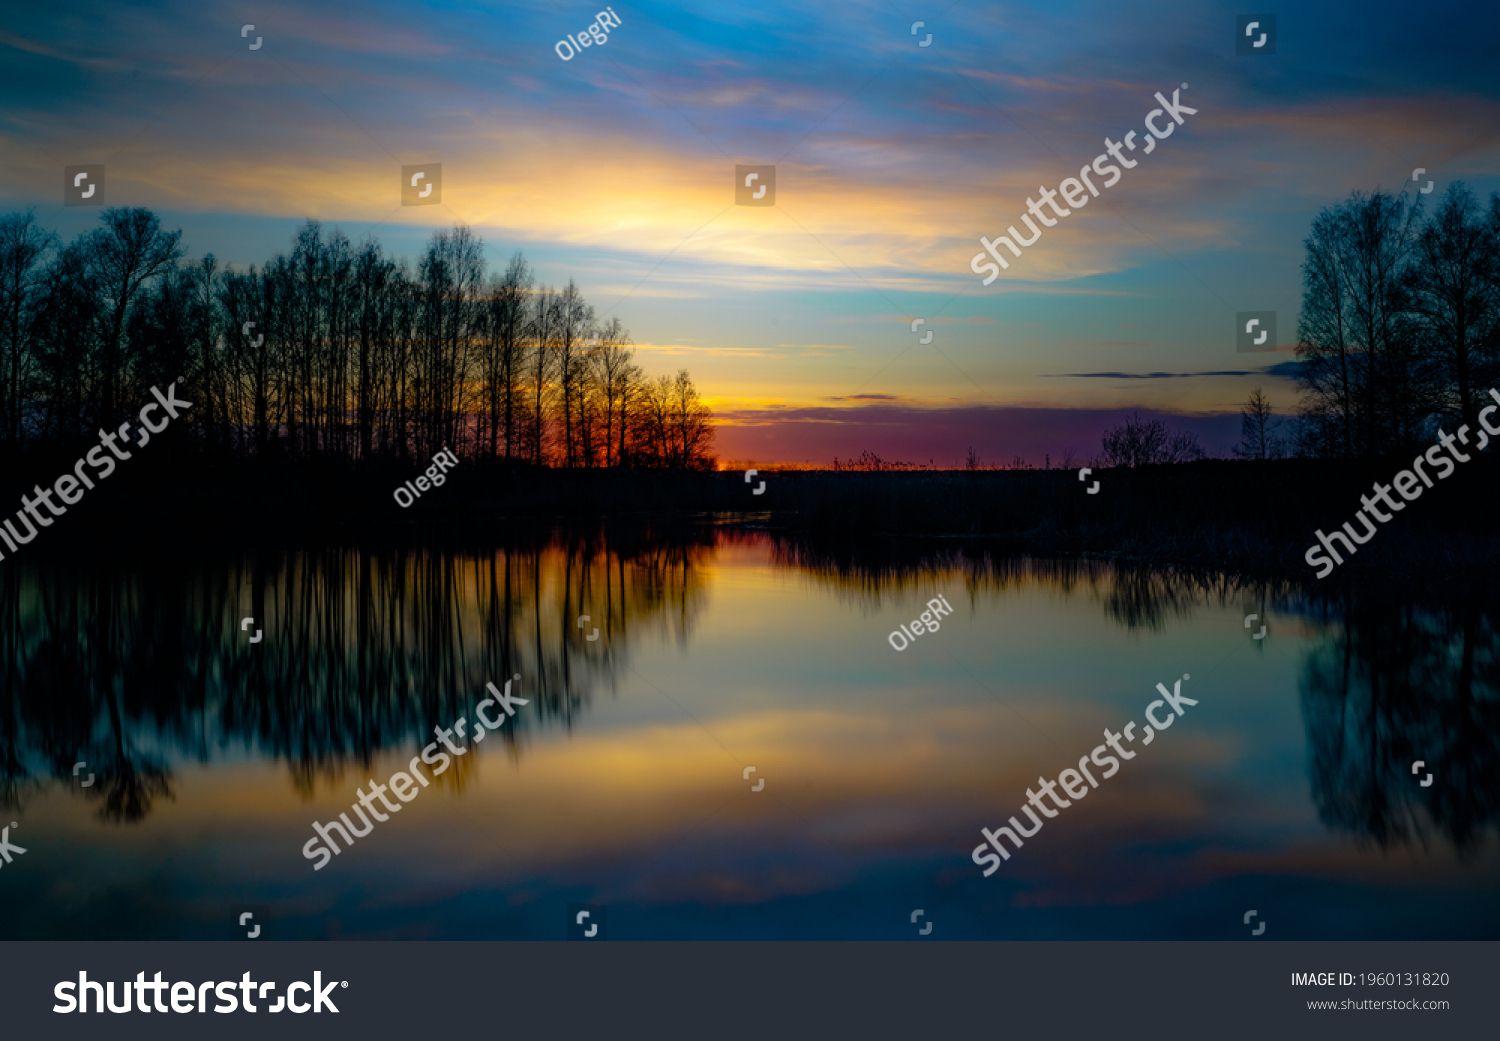 sunset at coast of the lake. Nature landscape. Nature in northern Europe. reflection, blue sky and yellow sunlight. landscape during sunset. #1960131820